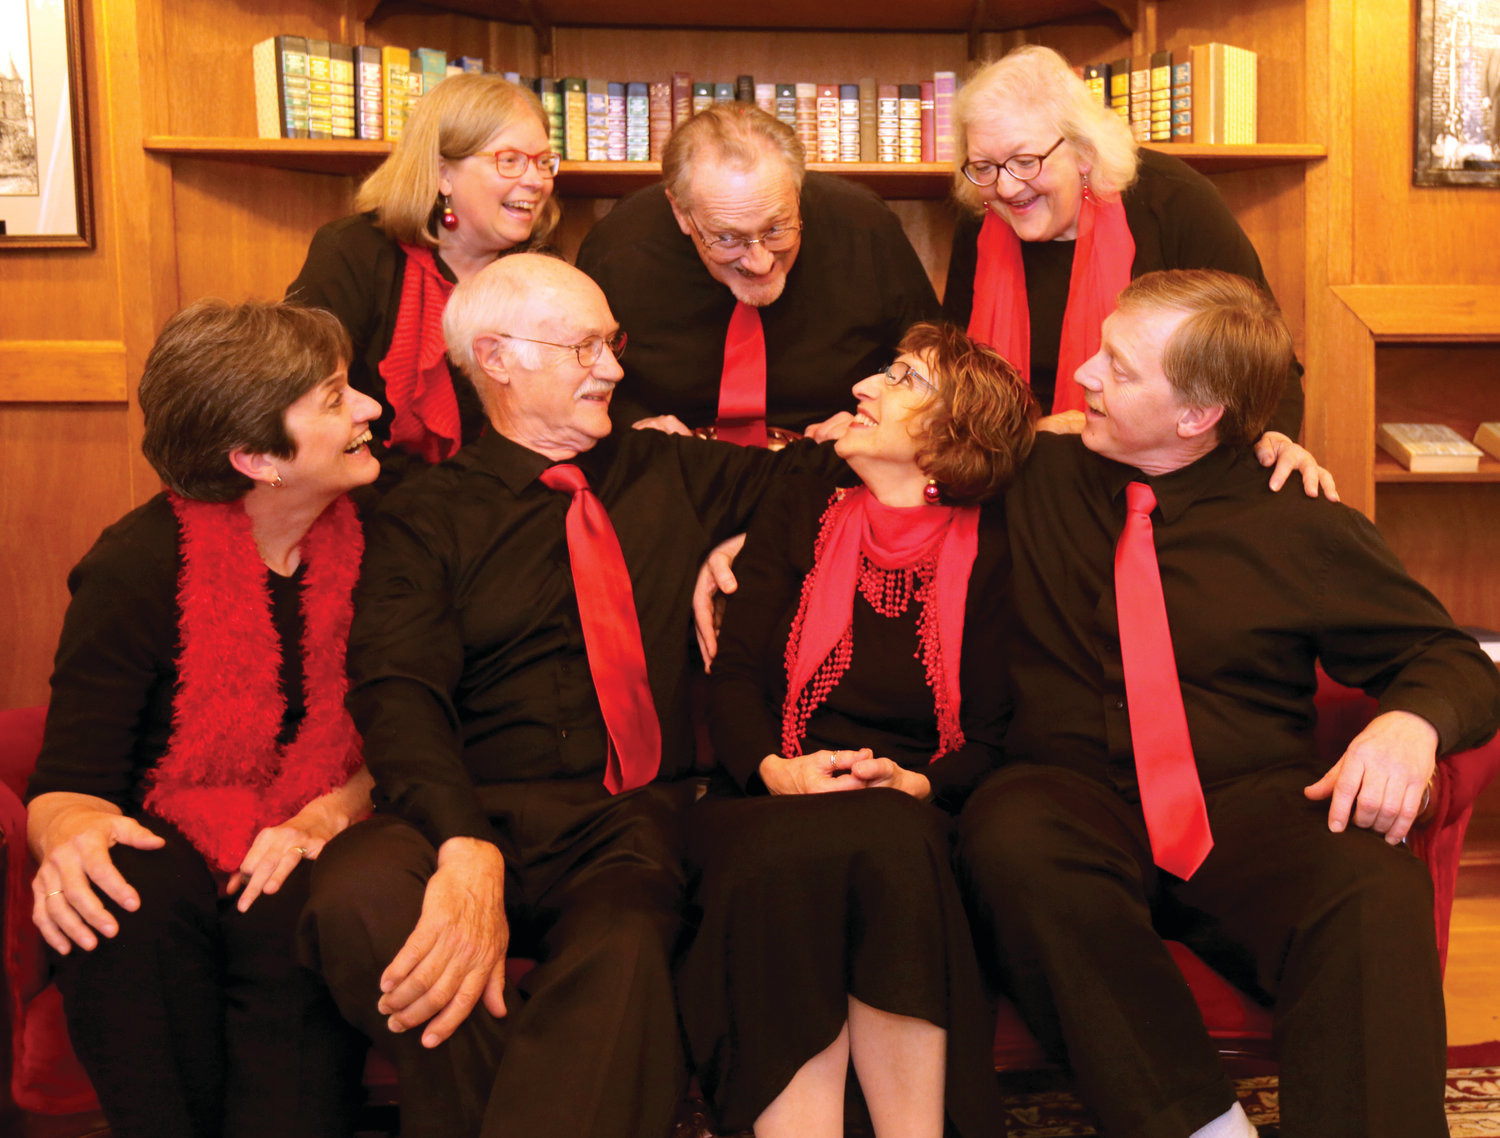 First Presbyterian Church Santa Rosa Singing Christmas Tree 2020 Wild Rose Chorale concerts upcoming | Port Townsend Leader